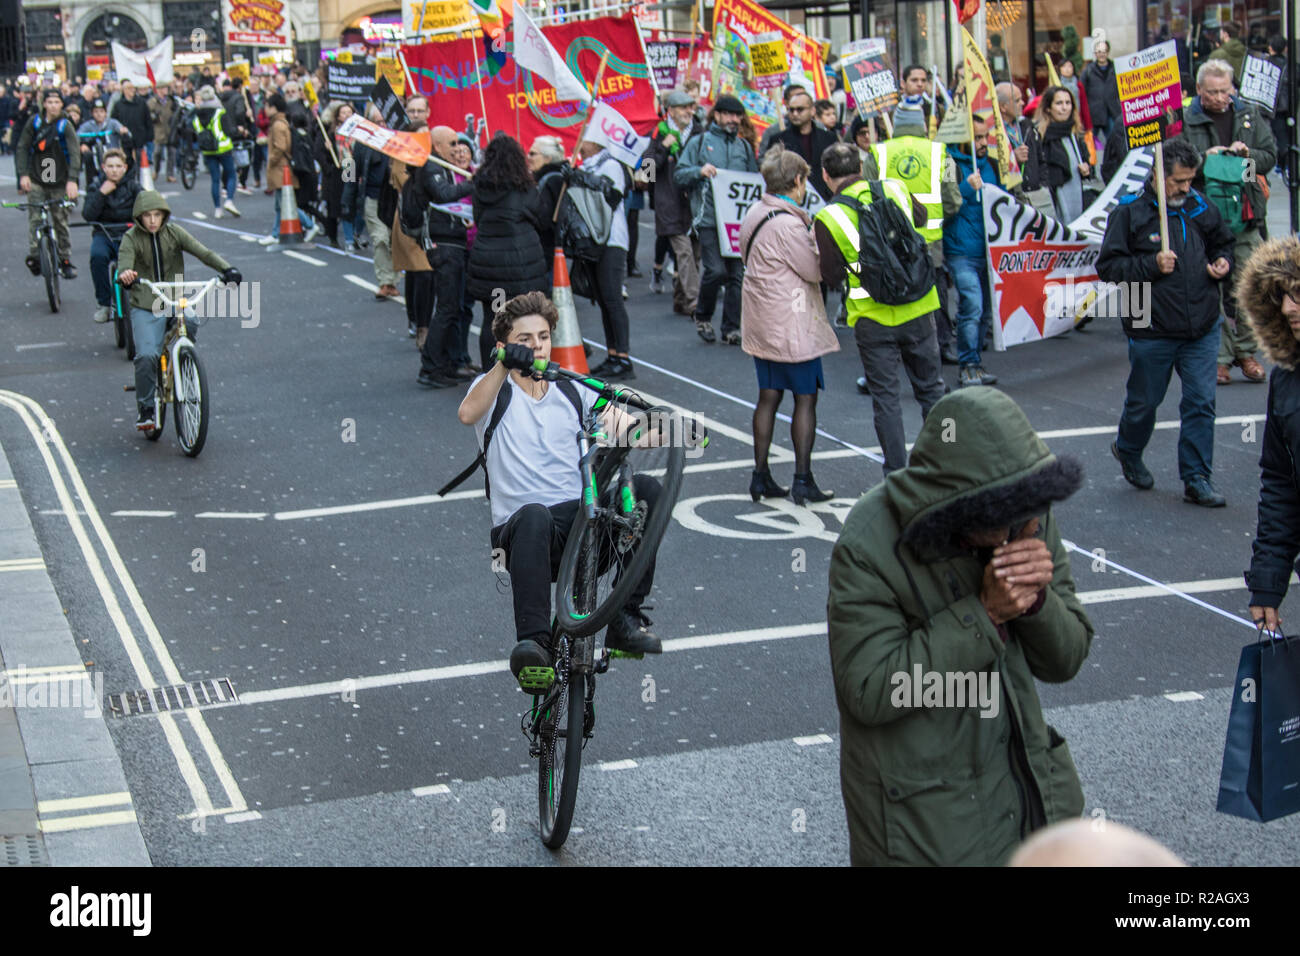 London, UK. 17th Nov, 2018. Thousands marched through central London in a demonstration against racism and fascism organised by Stand up to Racism and Unite against Fascism, Credit: David Rowe/Alamy Live News - Stock Image